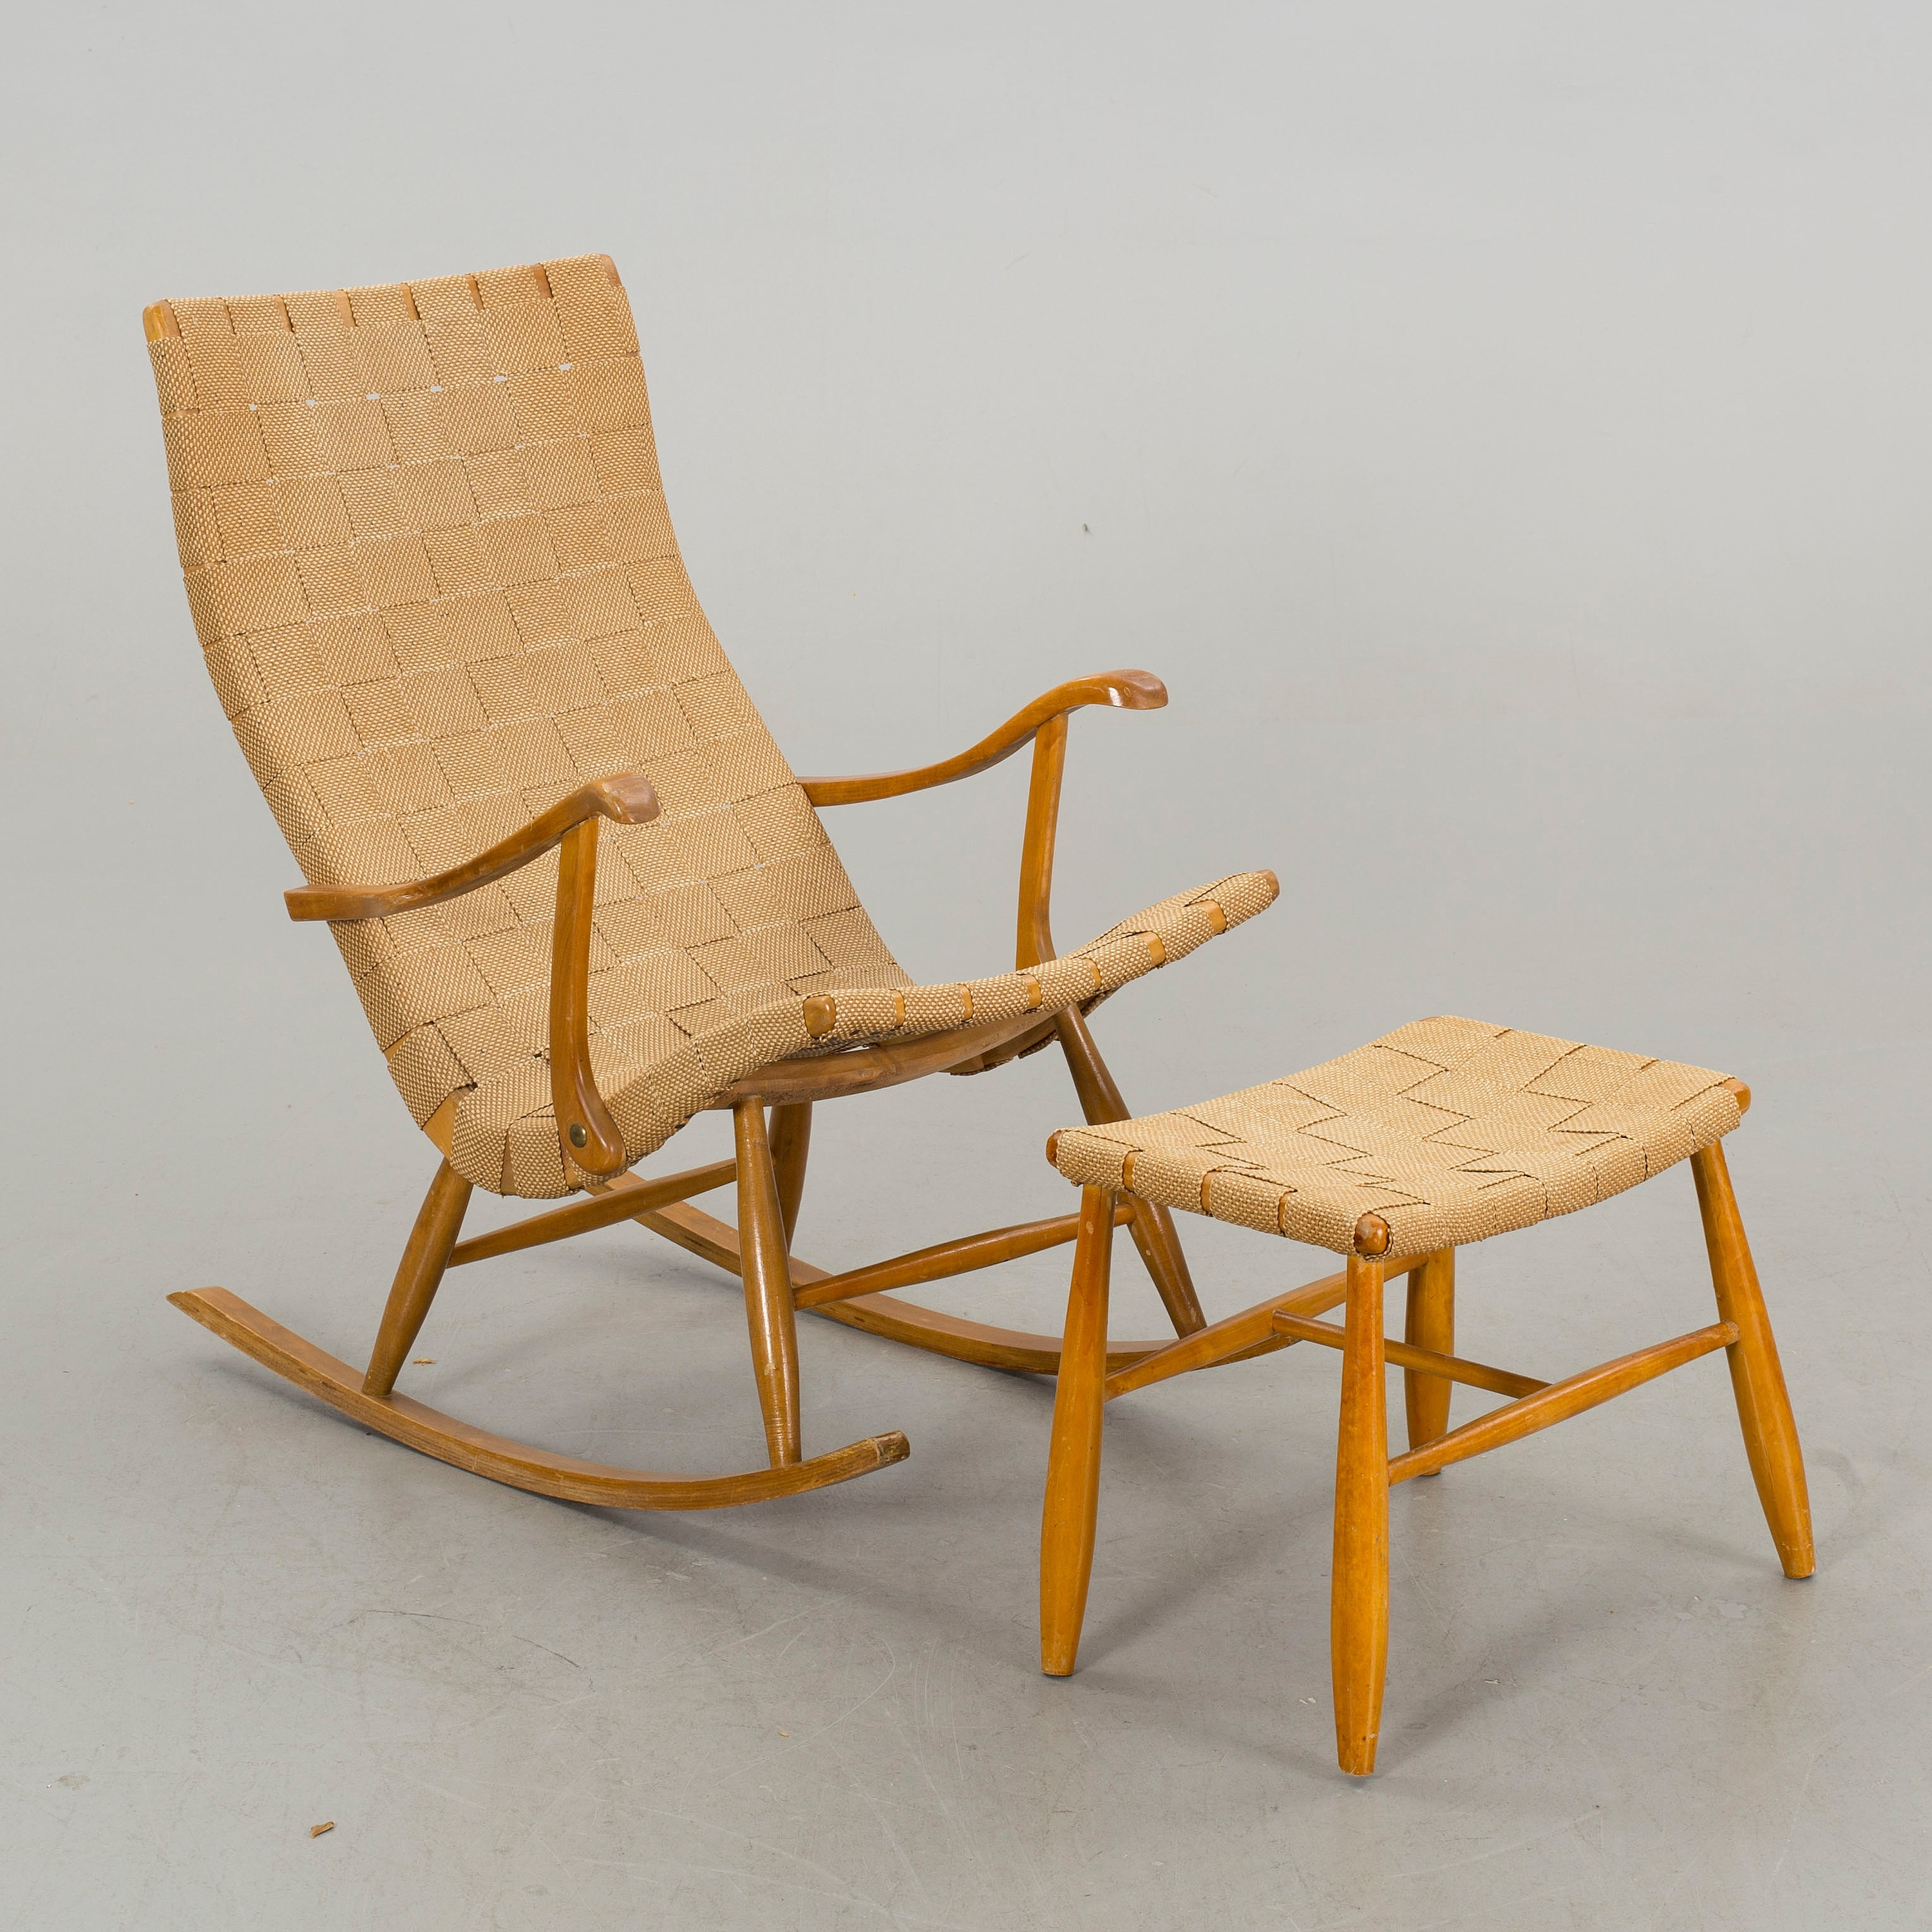 A Rocking Chair With Footstool, 1940/50S, – Bukowskis With 2017 Rocking Chairs With Footstool (View 14 of 15)